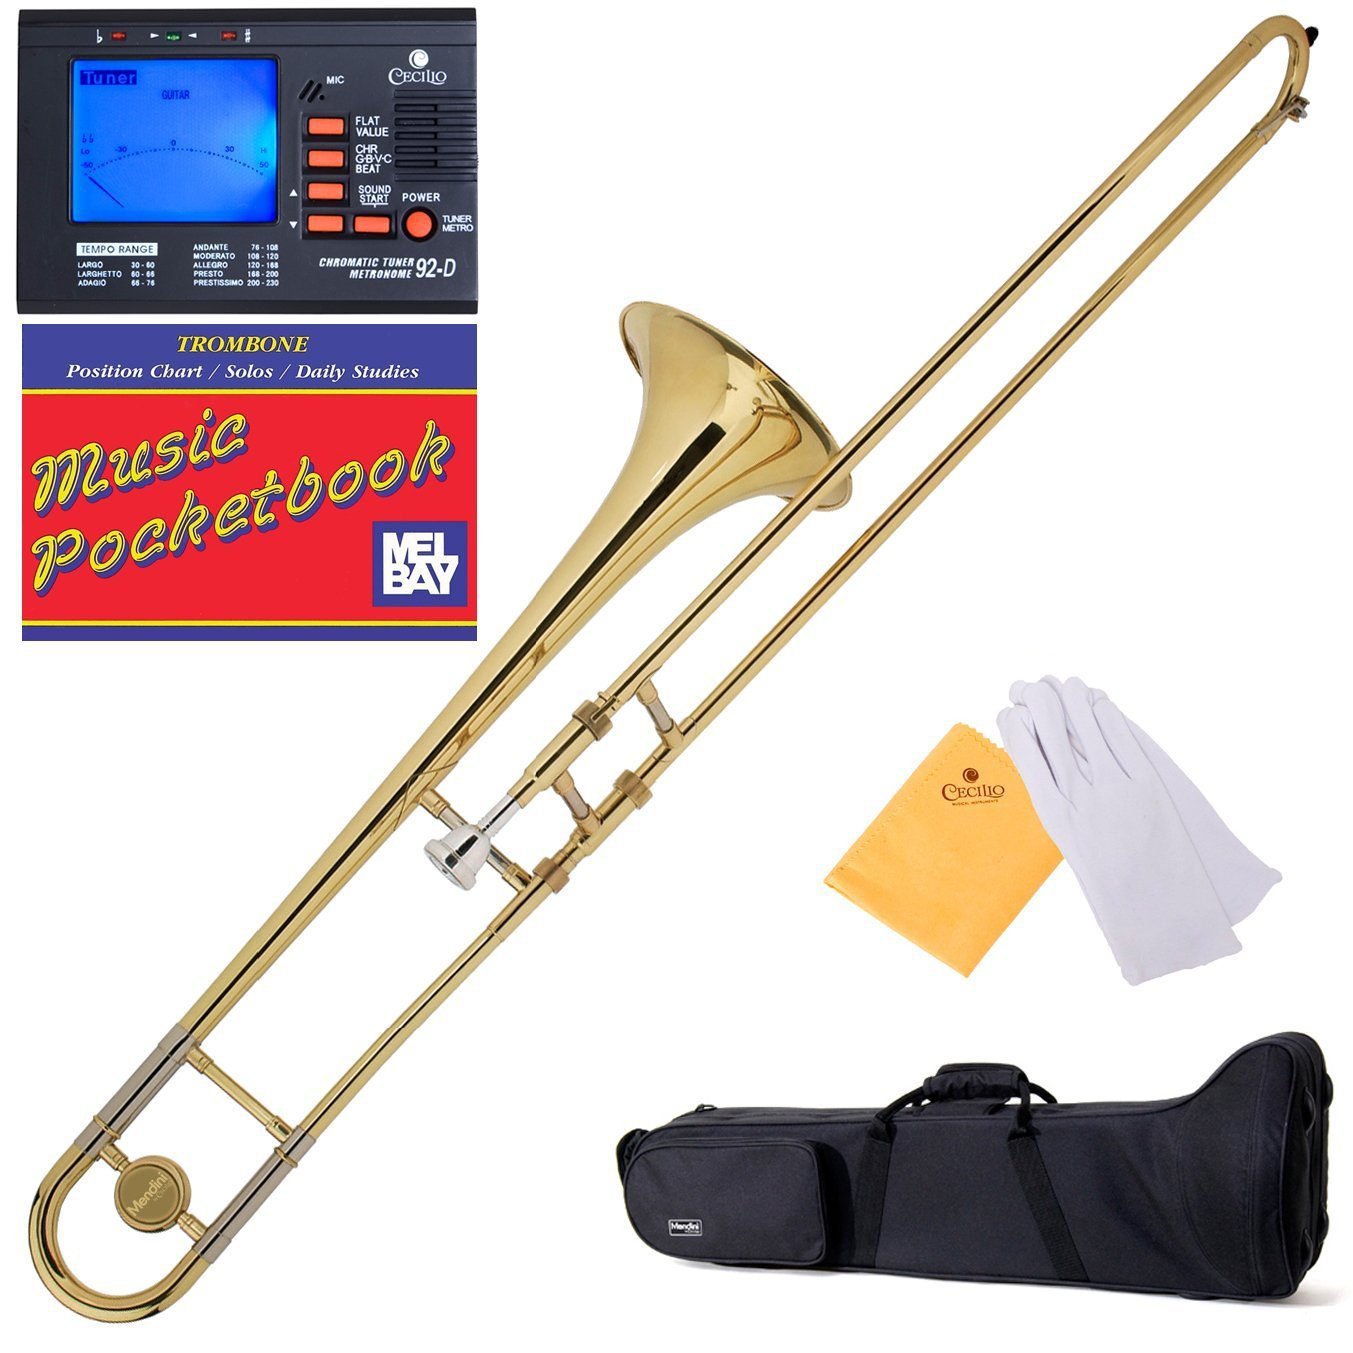 Mendini by Cecilio Bb Tenor Slide Trombone, Gold with 1 Year Warranty, Tuner, Pocketbook and More, MTB-L by Mendini by Cecilio